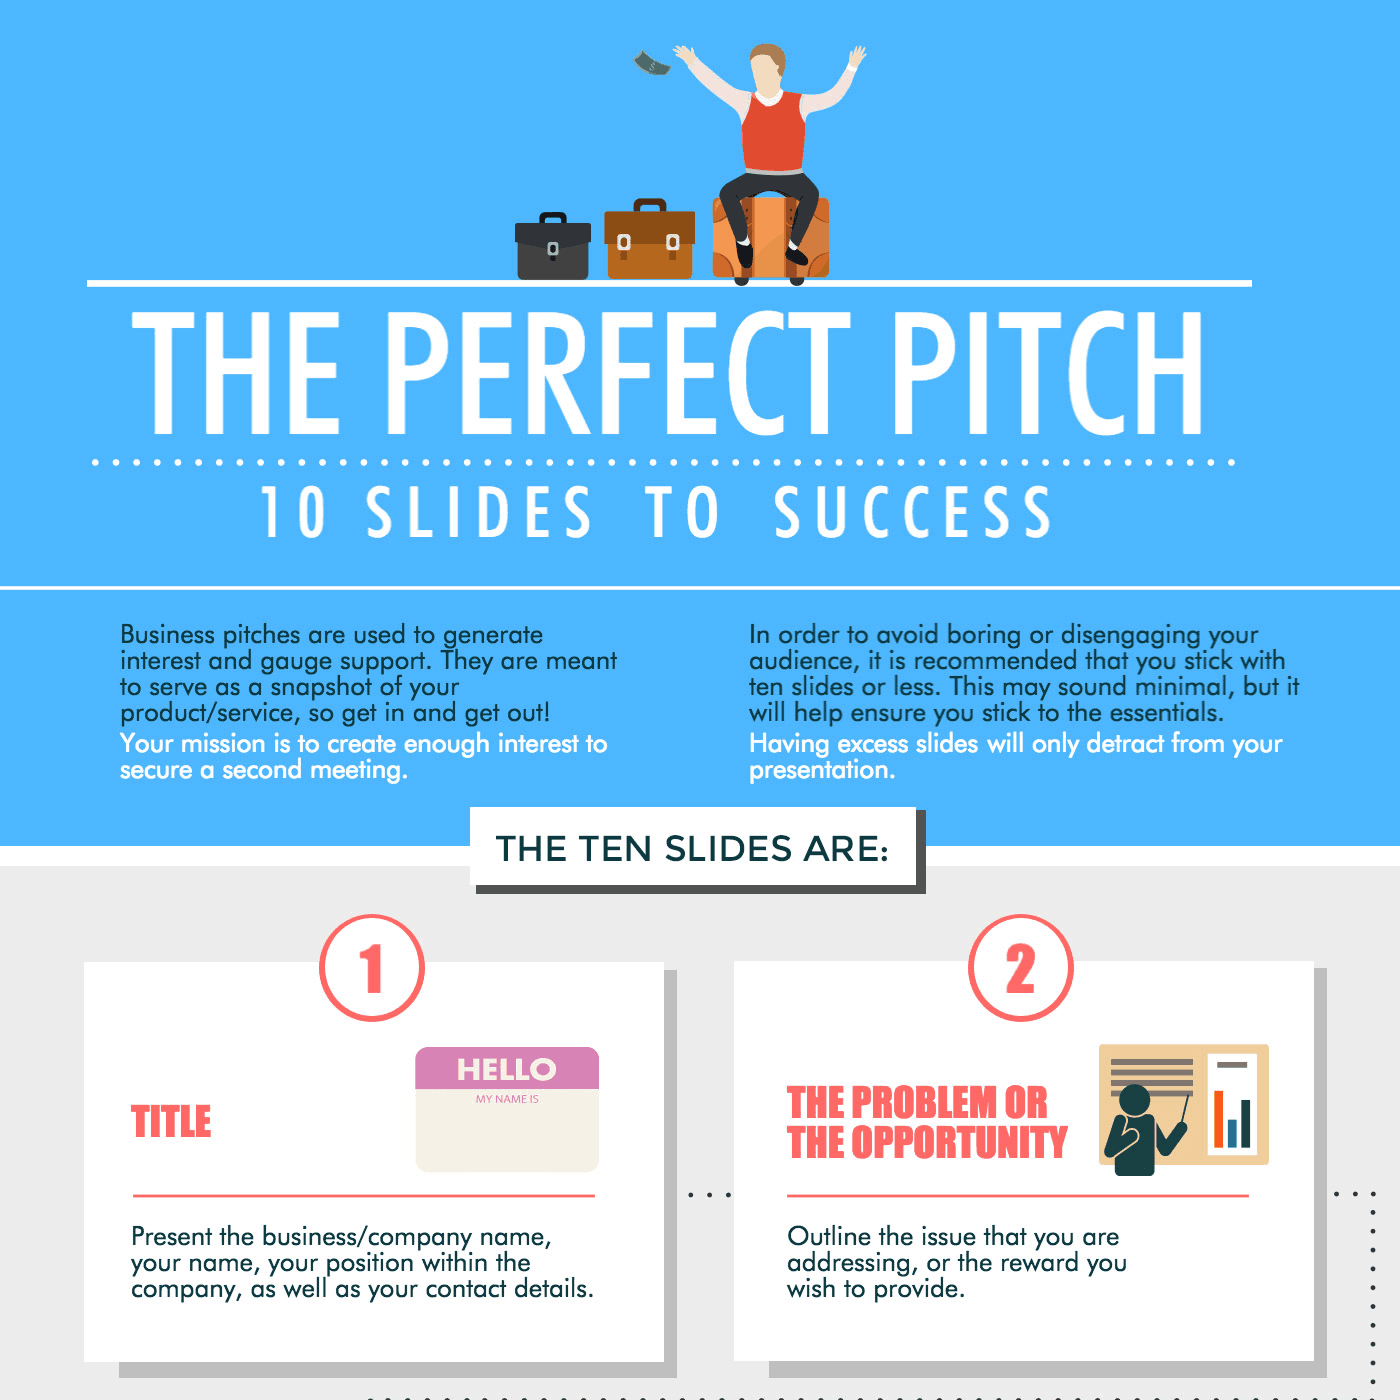 the perfect pitch, success infographic